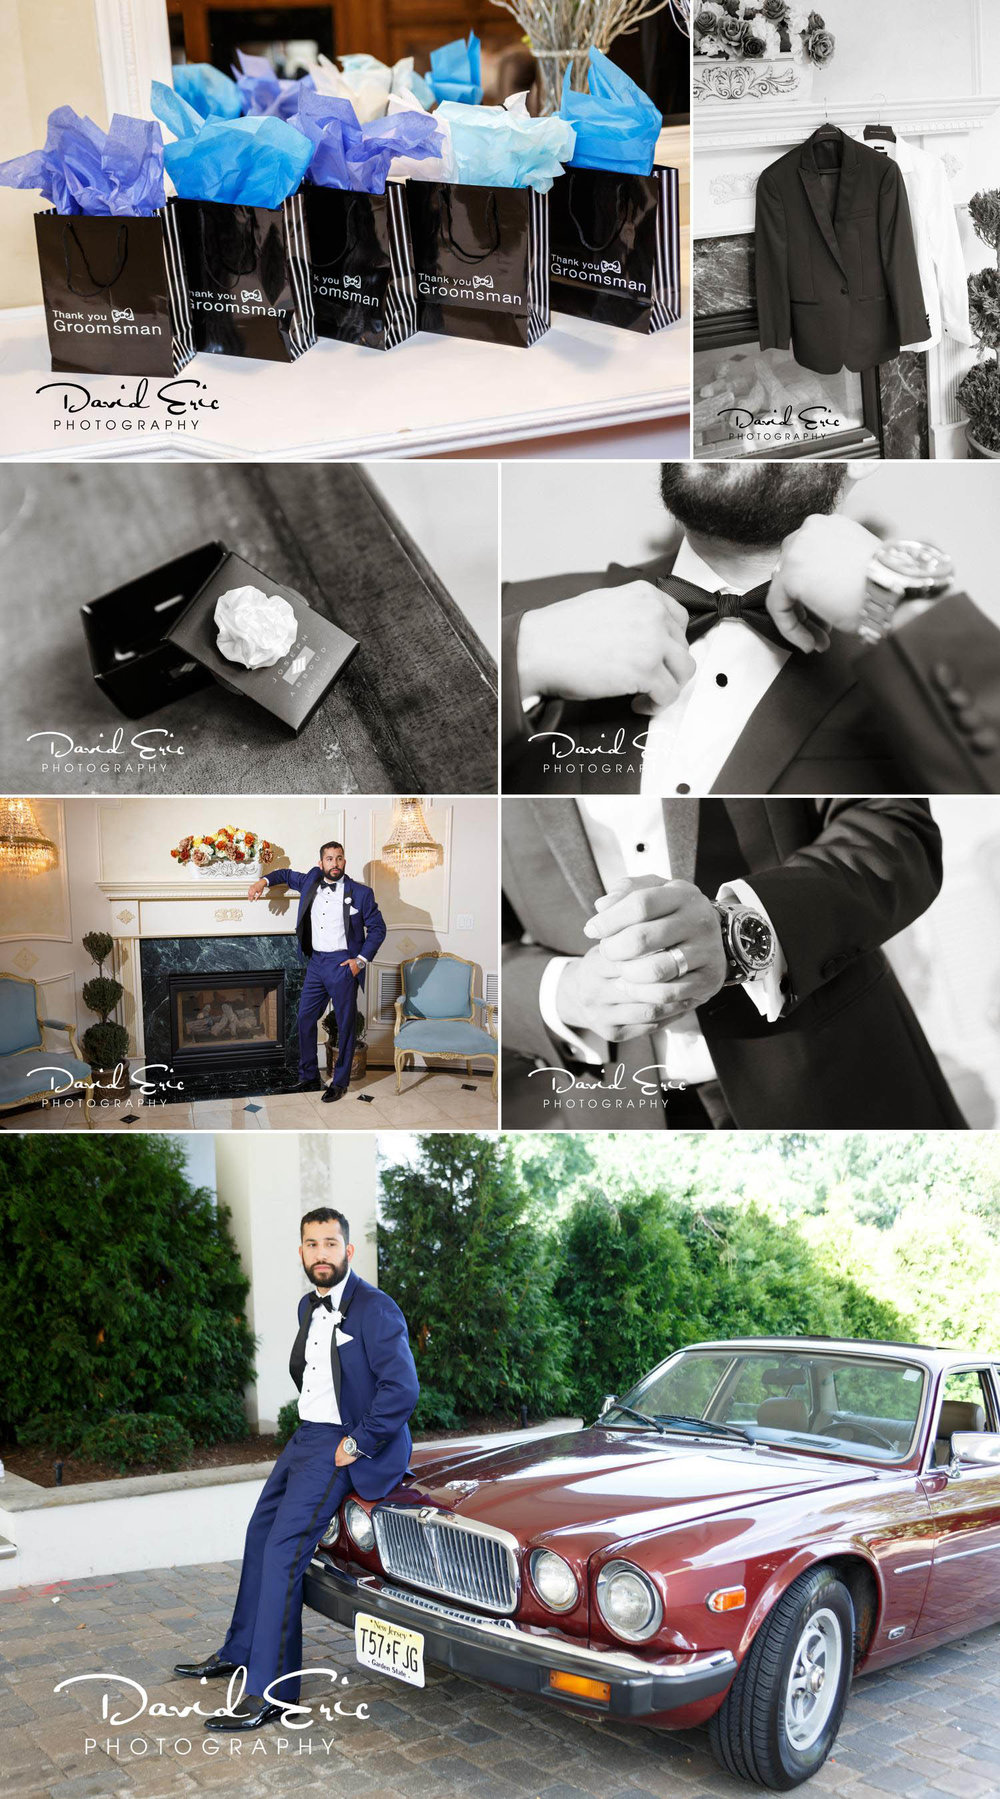 Photos of the groom getting ready at the tides estates in north haledon new jersey. He wore a watch that he received as a gift from the bride, instead of a boutonniere he wore a lapel flower pin on display was his groomsmens gifts and tux. His wedding car was a vintage Jaguar.  David Eric Photography is a professional New Jersey and New York City wedding photographer capturing weddings from NJ, NY, NYC and beyond. Our primary focus is on creating a unique boutique experience for every couple.